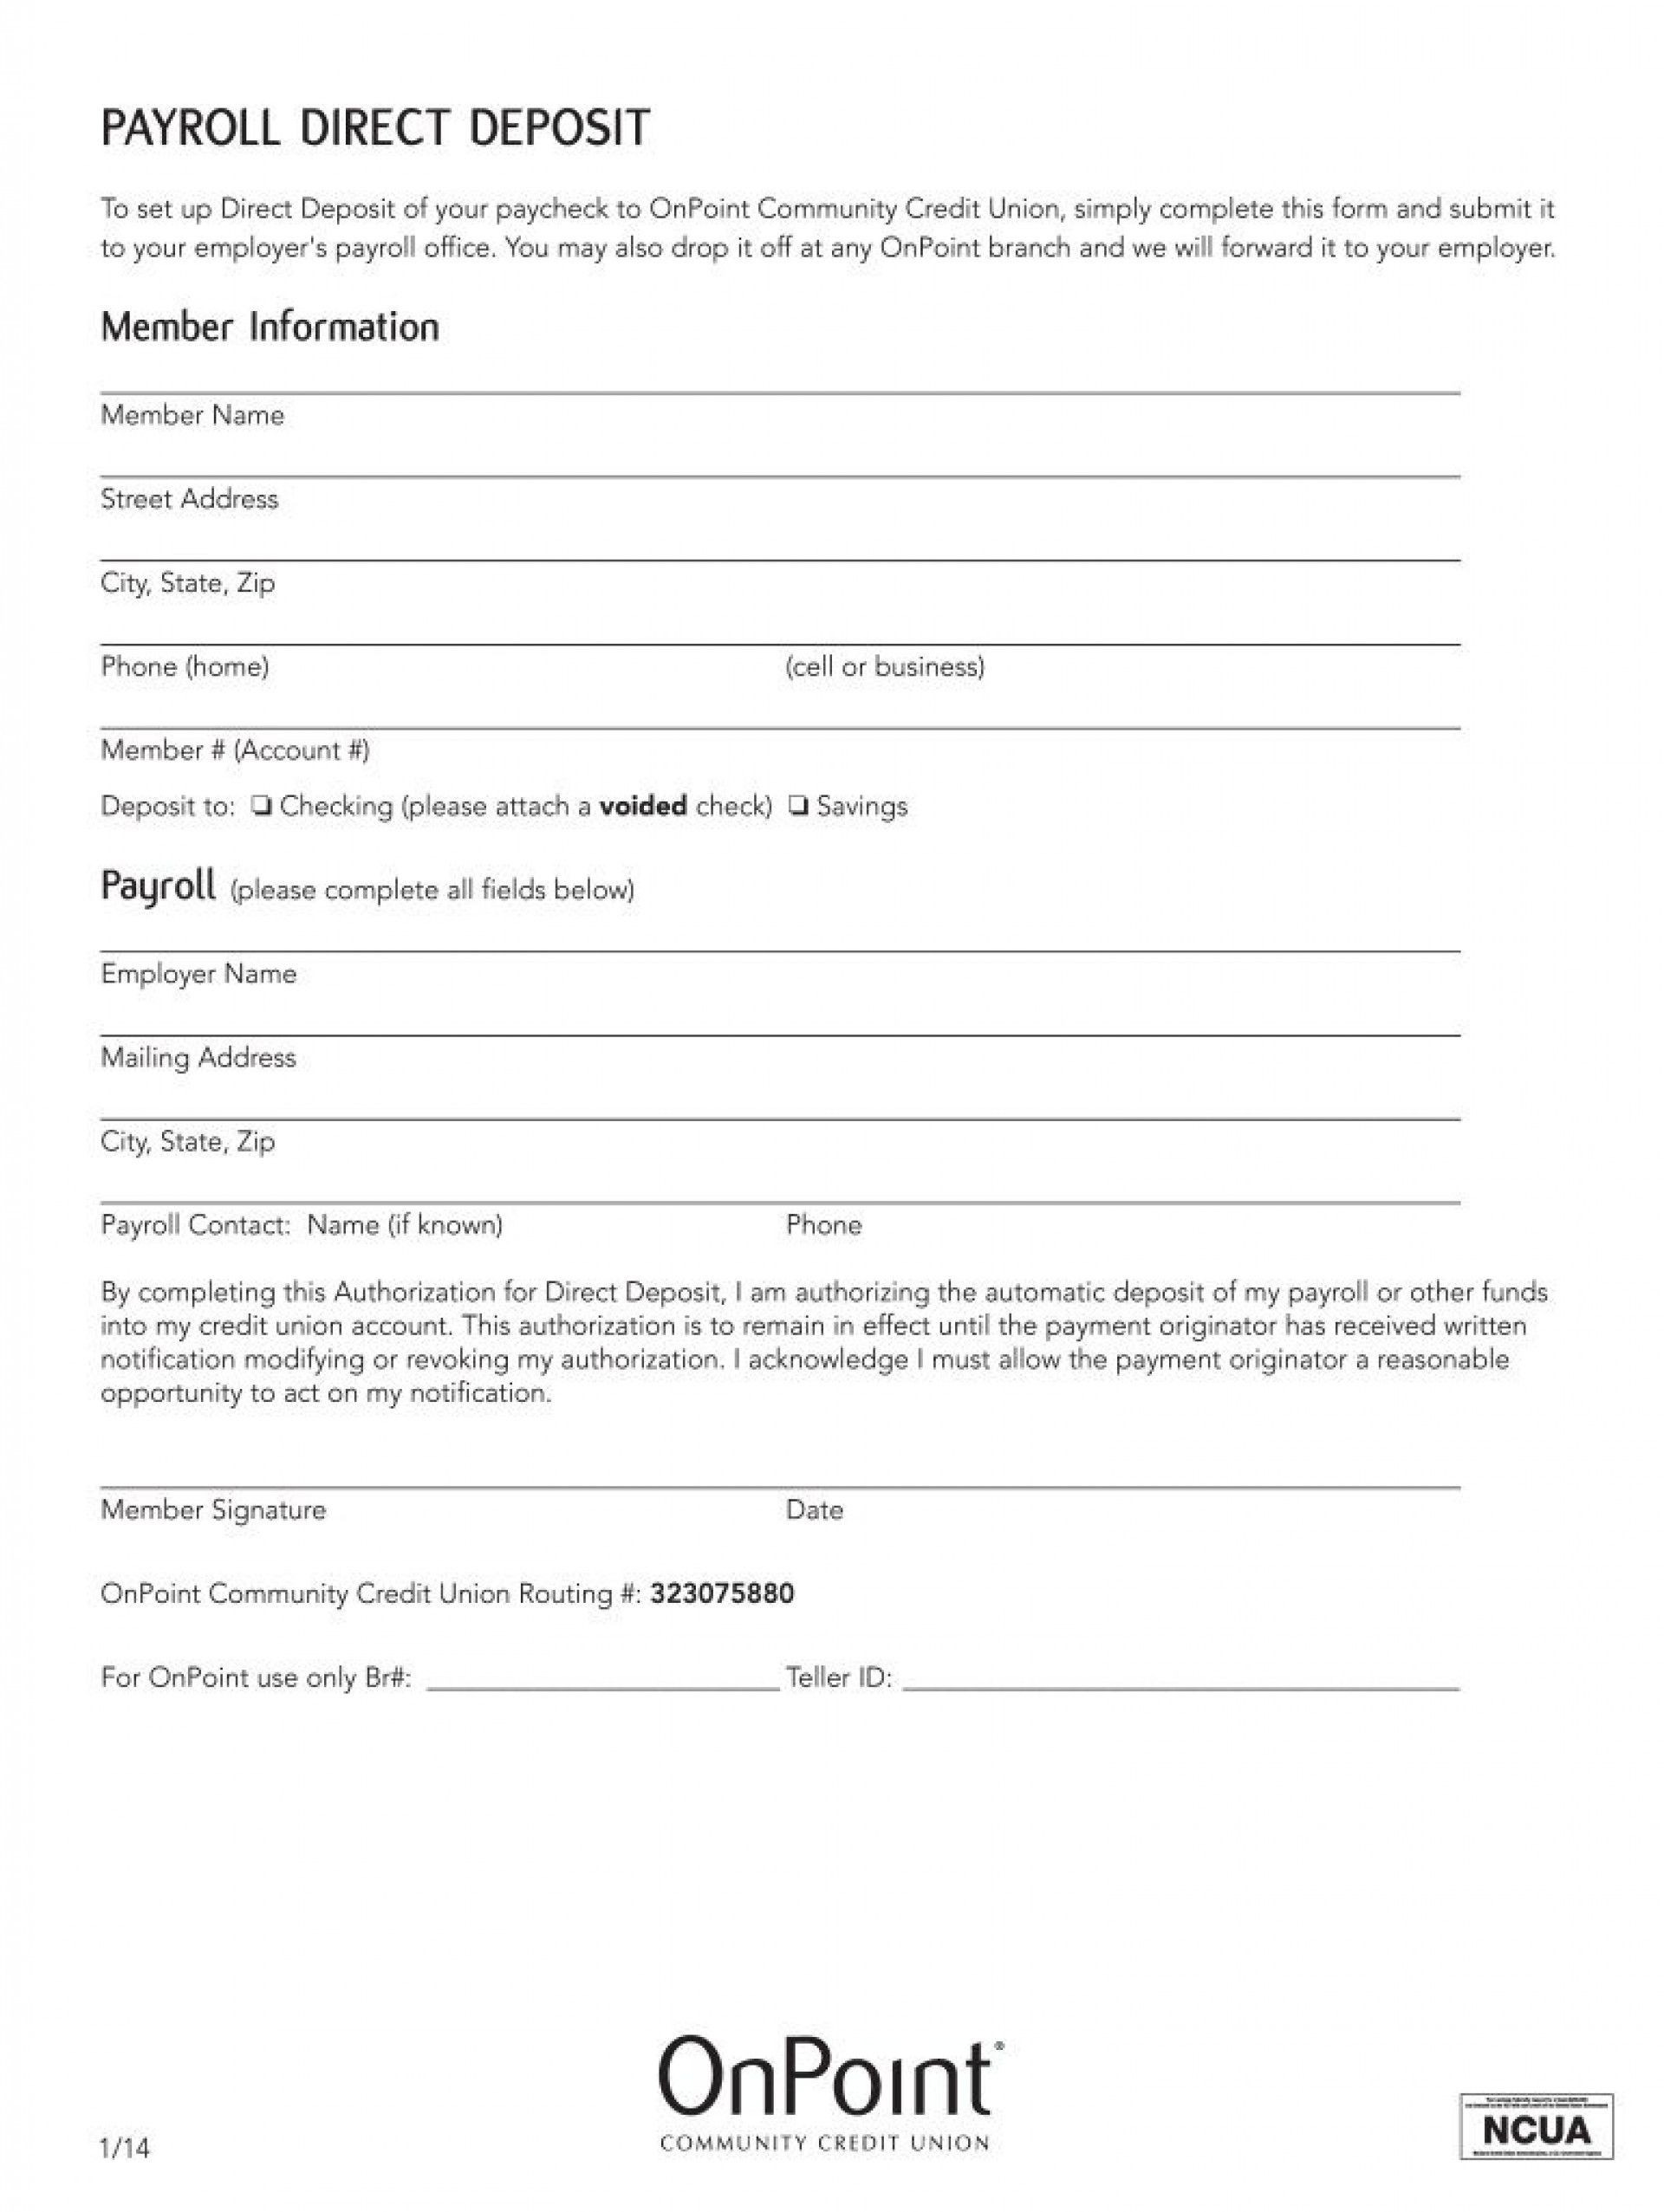 004 Top Direct Deposit Agreement Authorization Form Template Sample 1920